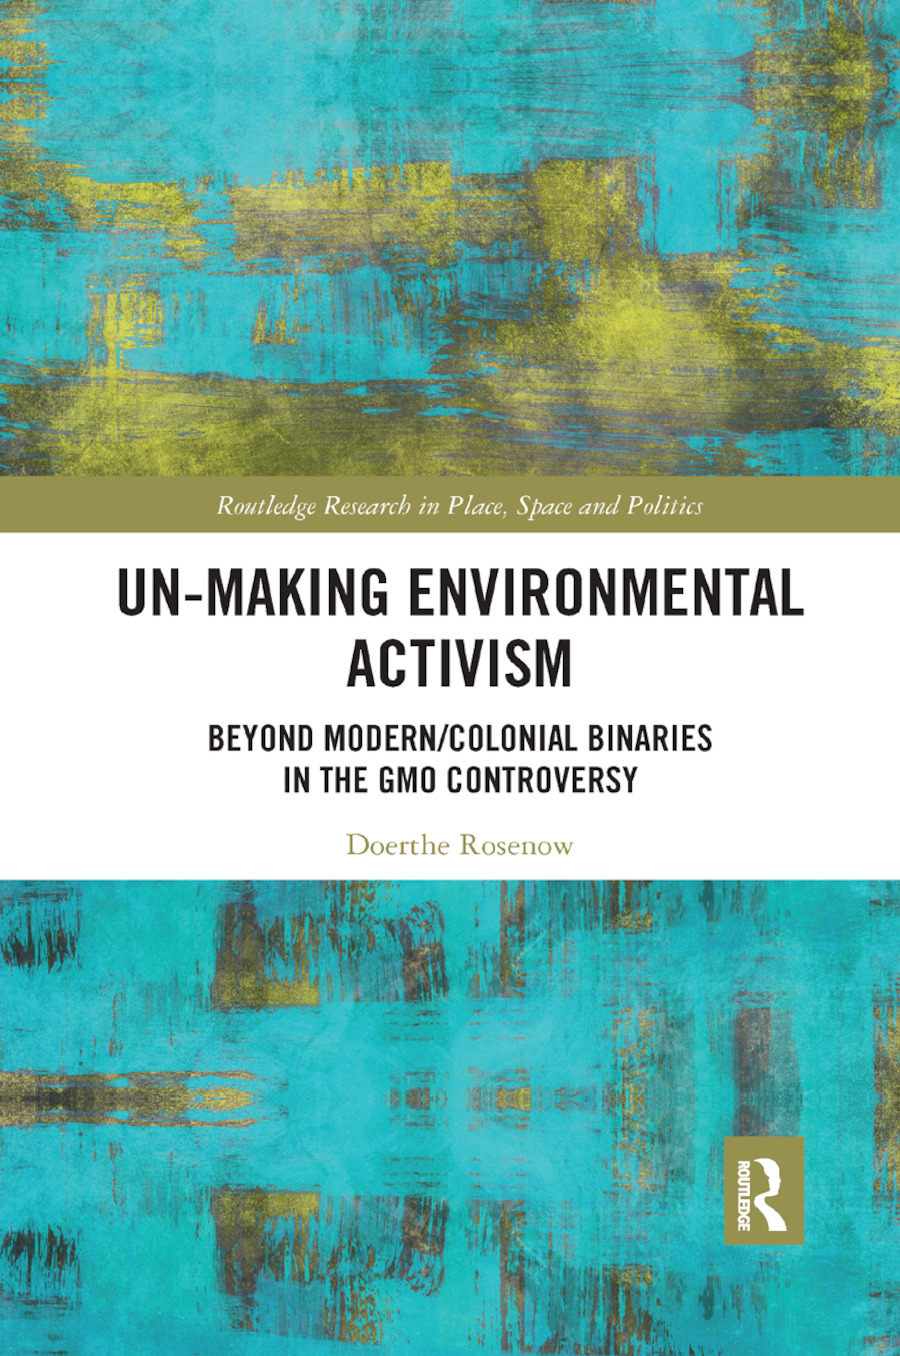 Un-making Environmental Activism: Beyond Modern/Colonial Binaries in the GMO Controversy book cover